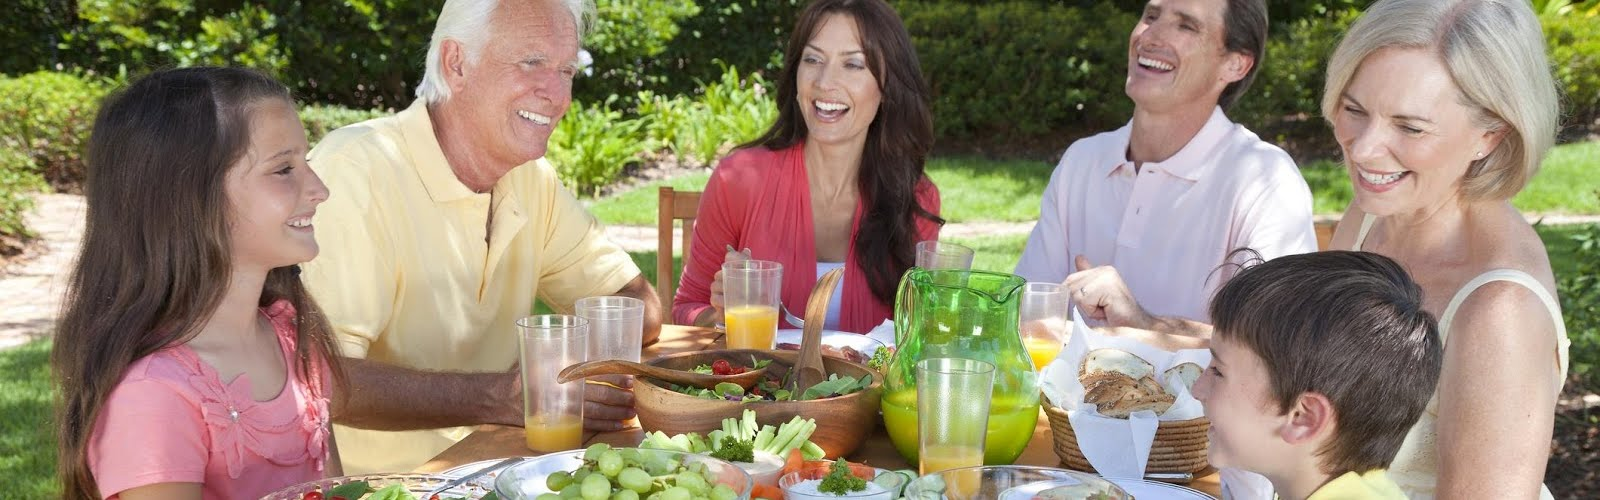 a family sitting around a table having a healthy lunch smiling with white teeth